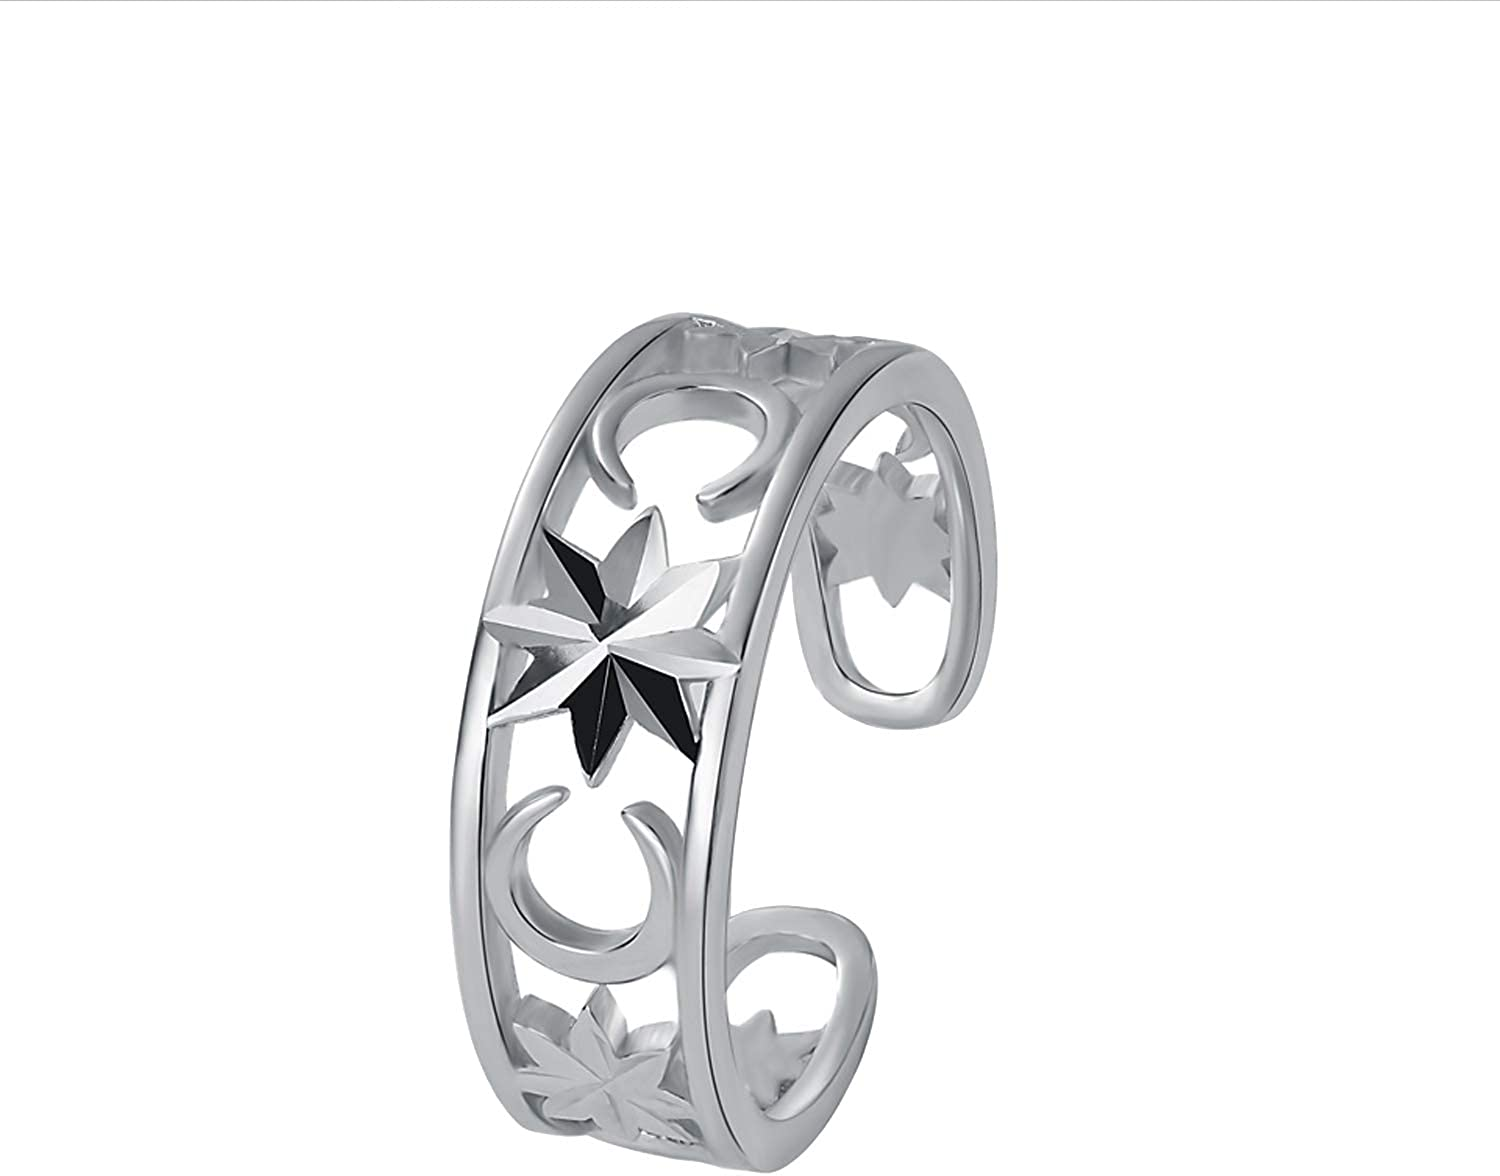 VIKI LYNN Toe Max 65% OFF Rings for Women Topics on TV 925 Silver Ope Sterling Adjustable